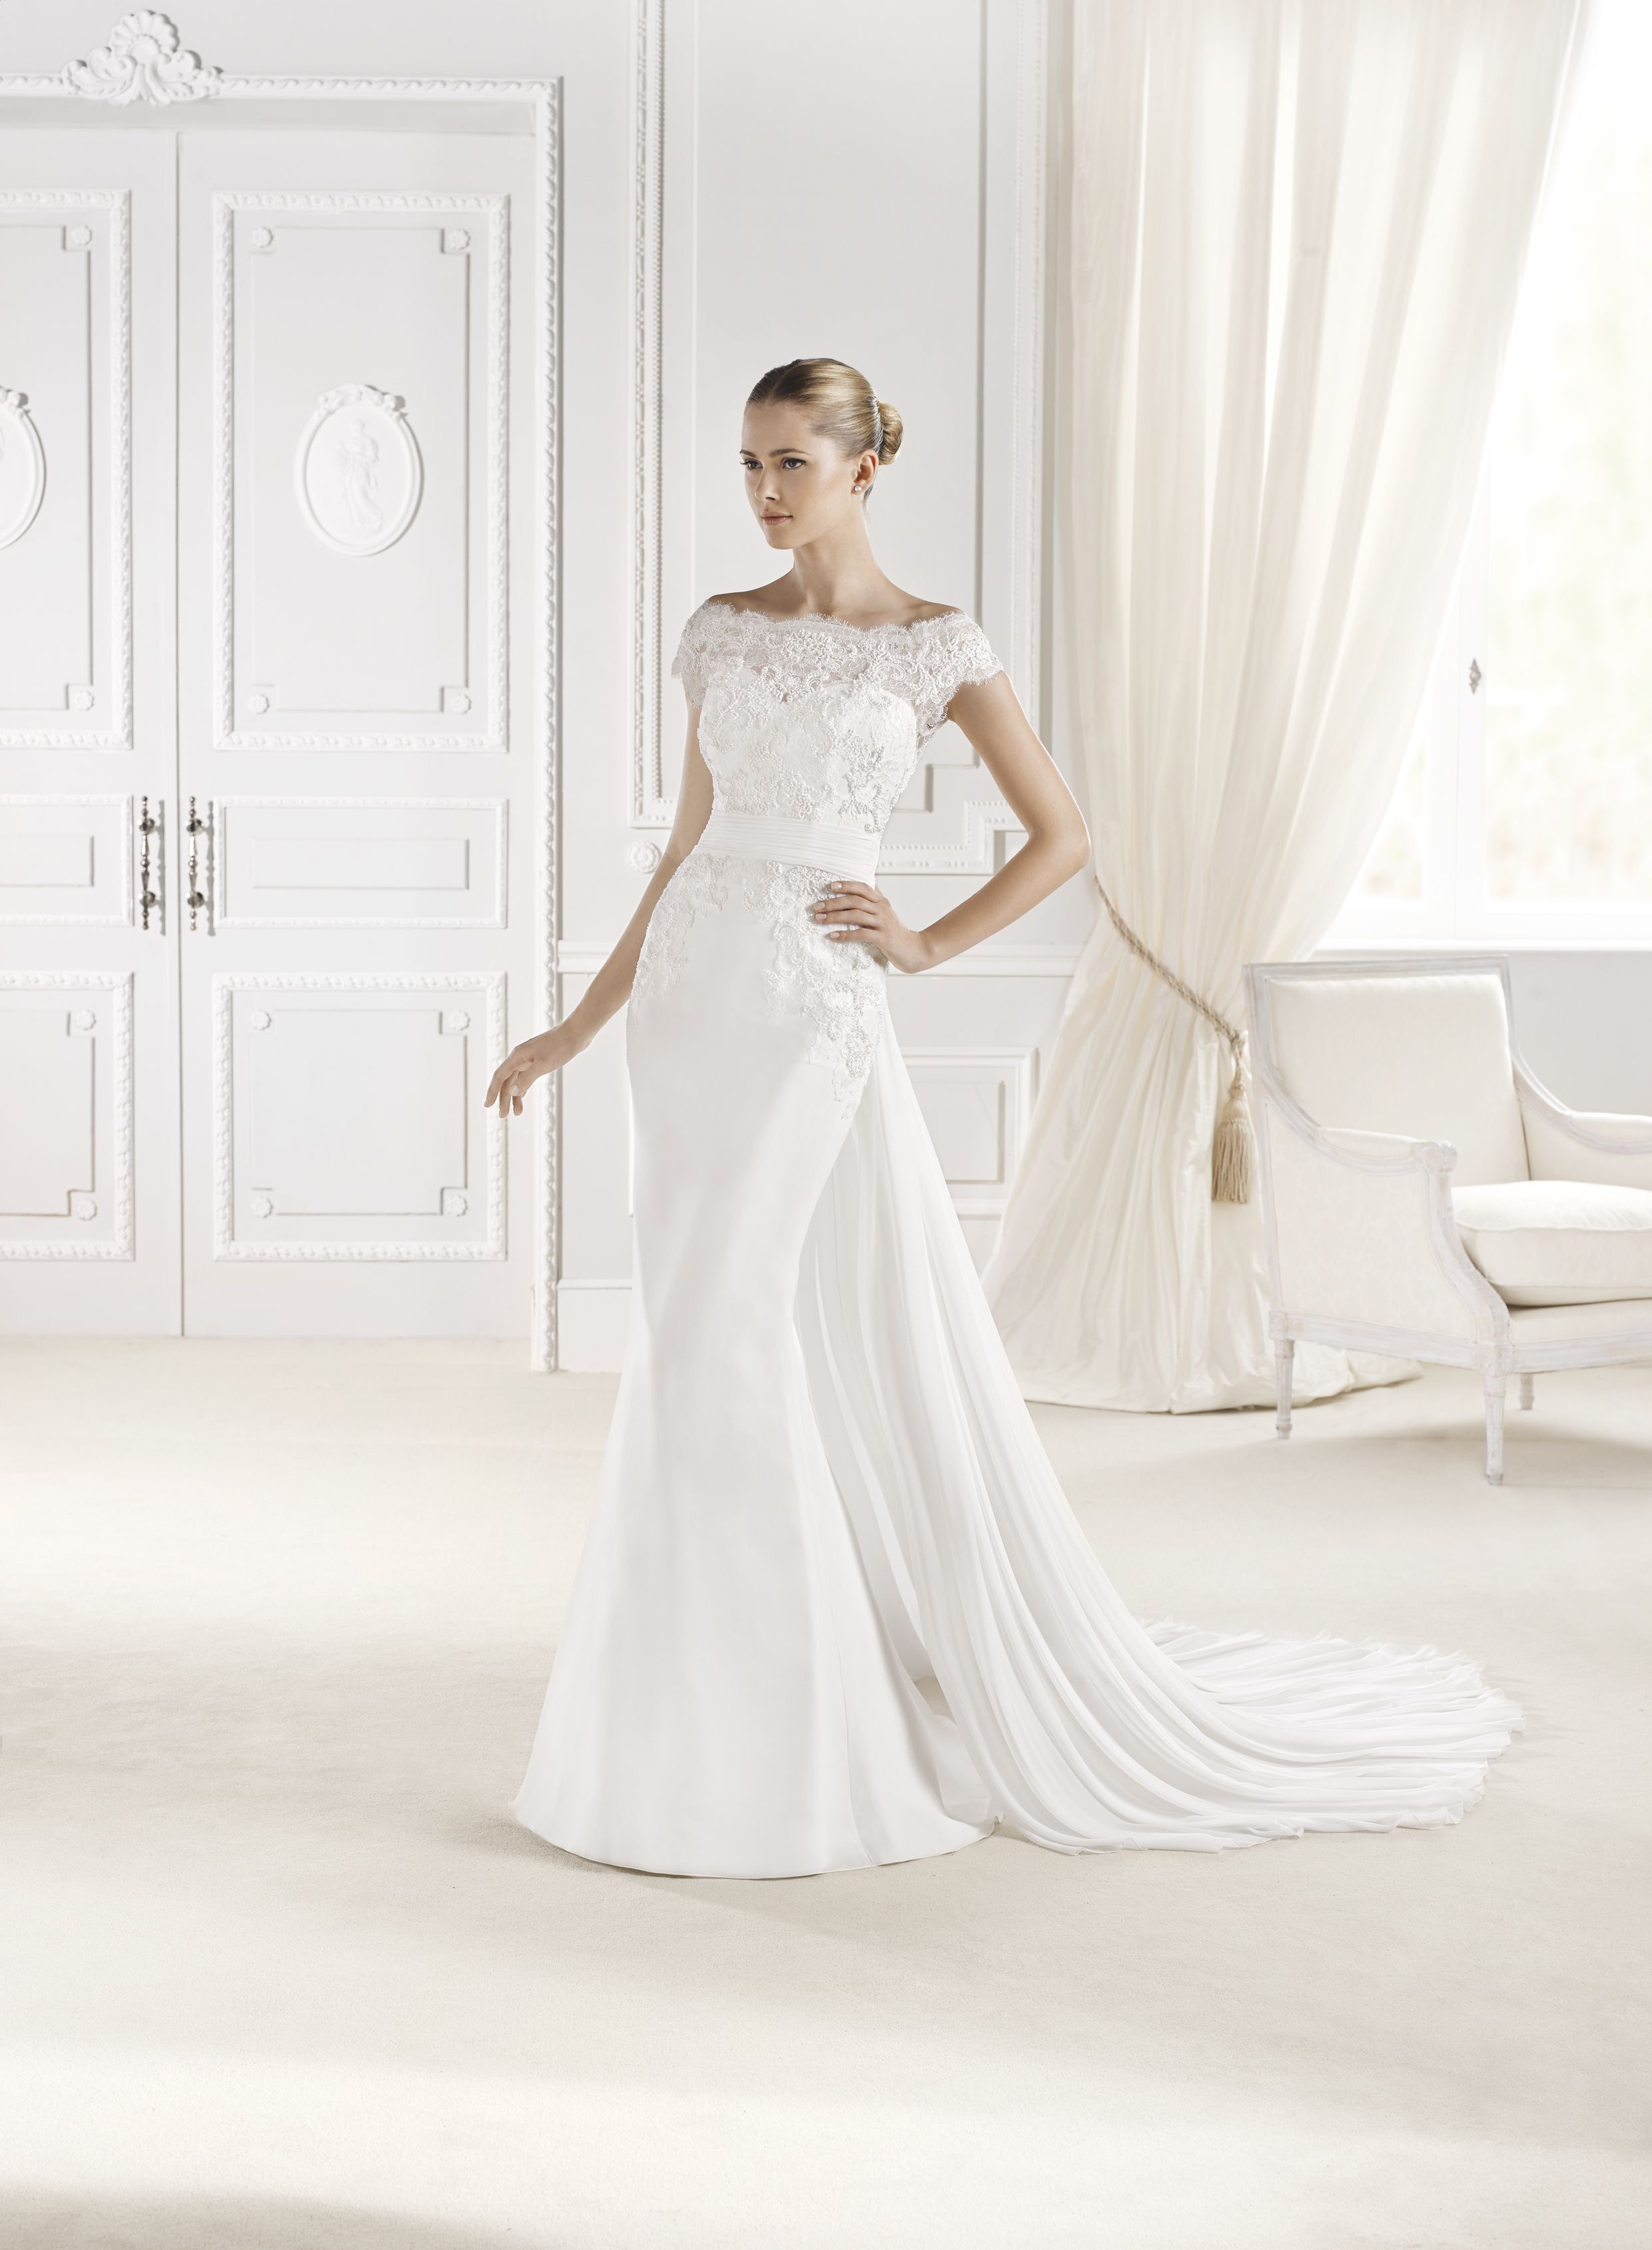 Eures By Lasposa From Ovias Size 10 Sample In Wedding Twgbride Michigan Wiliamstonmi